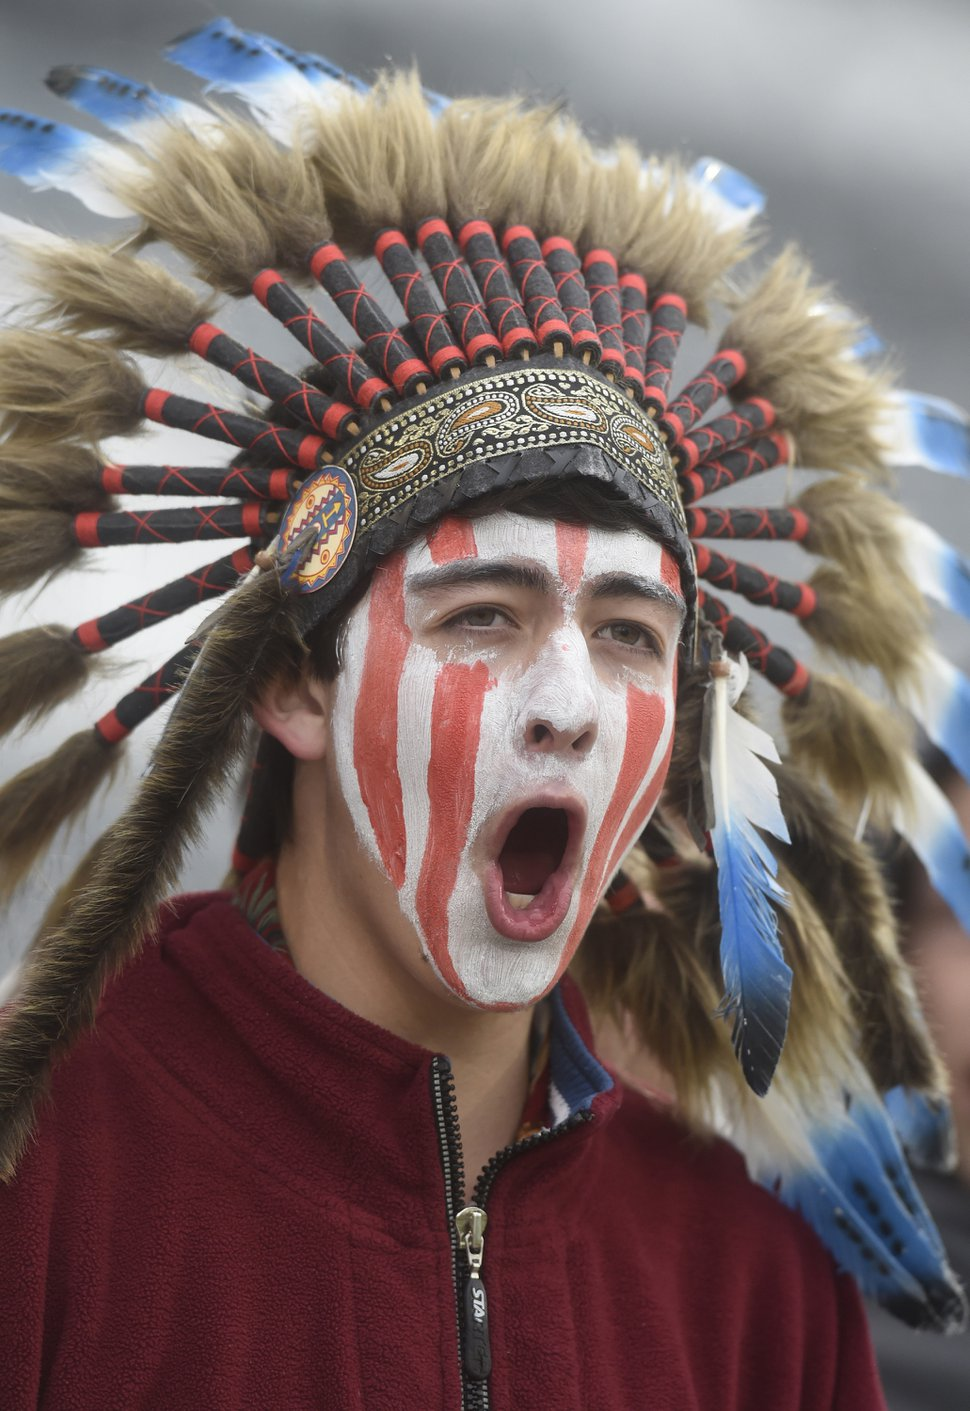 (Mark Reis | The Gazette via AP file photo) In May 2015, a Cheyenne Mountain High School student wears a headdress and face paint as he cheers for his school — which uses